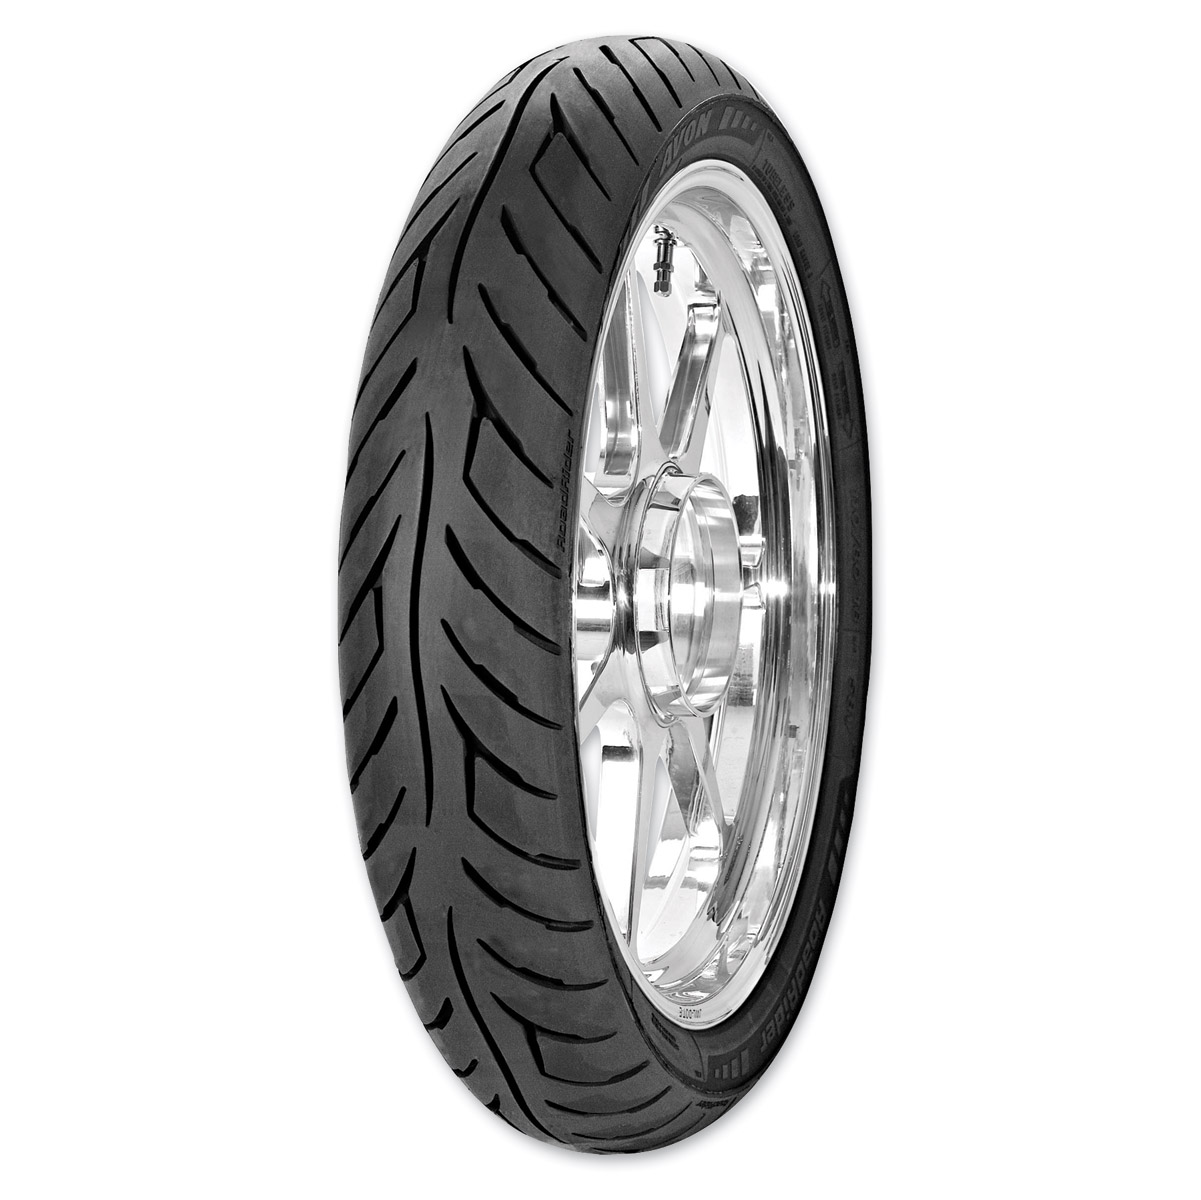 Avon AM26 Roadrider 90/90-18 Front/Rear Tire